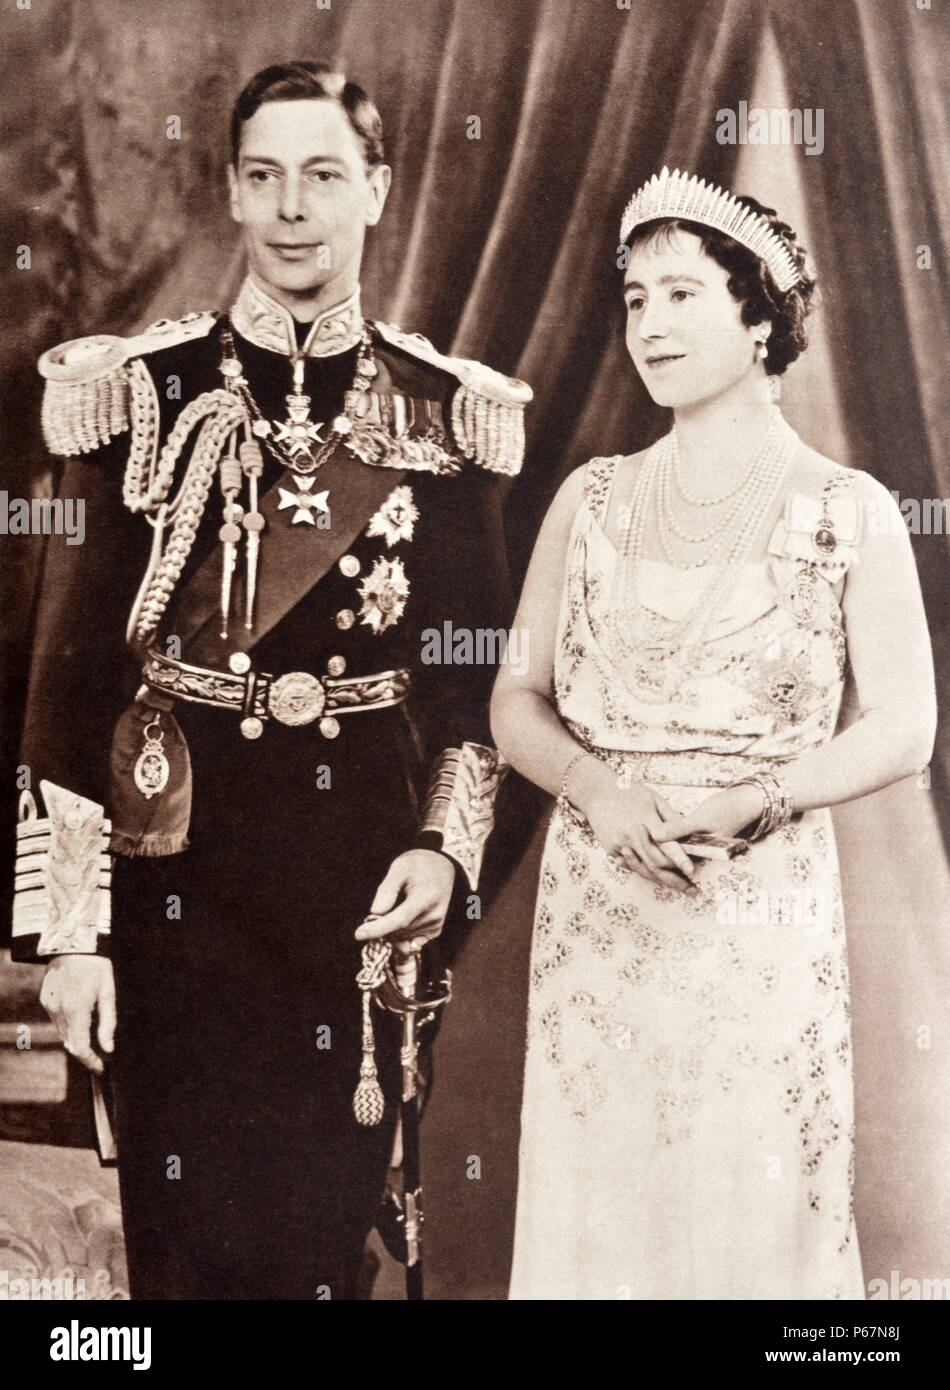 Portrait of King George VI and Queen Elizabeth of England, in formal coronation robes. - Stock Image